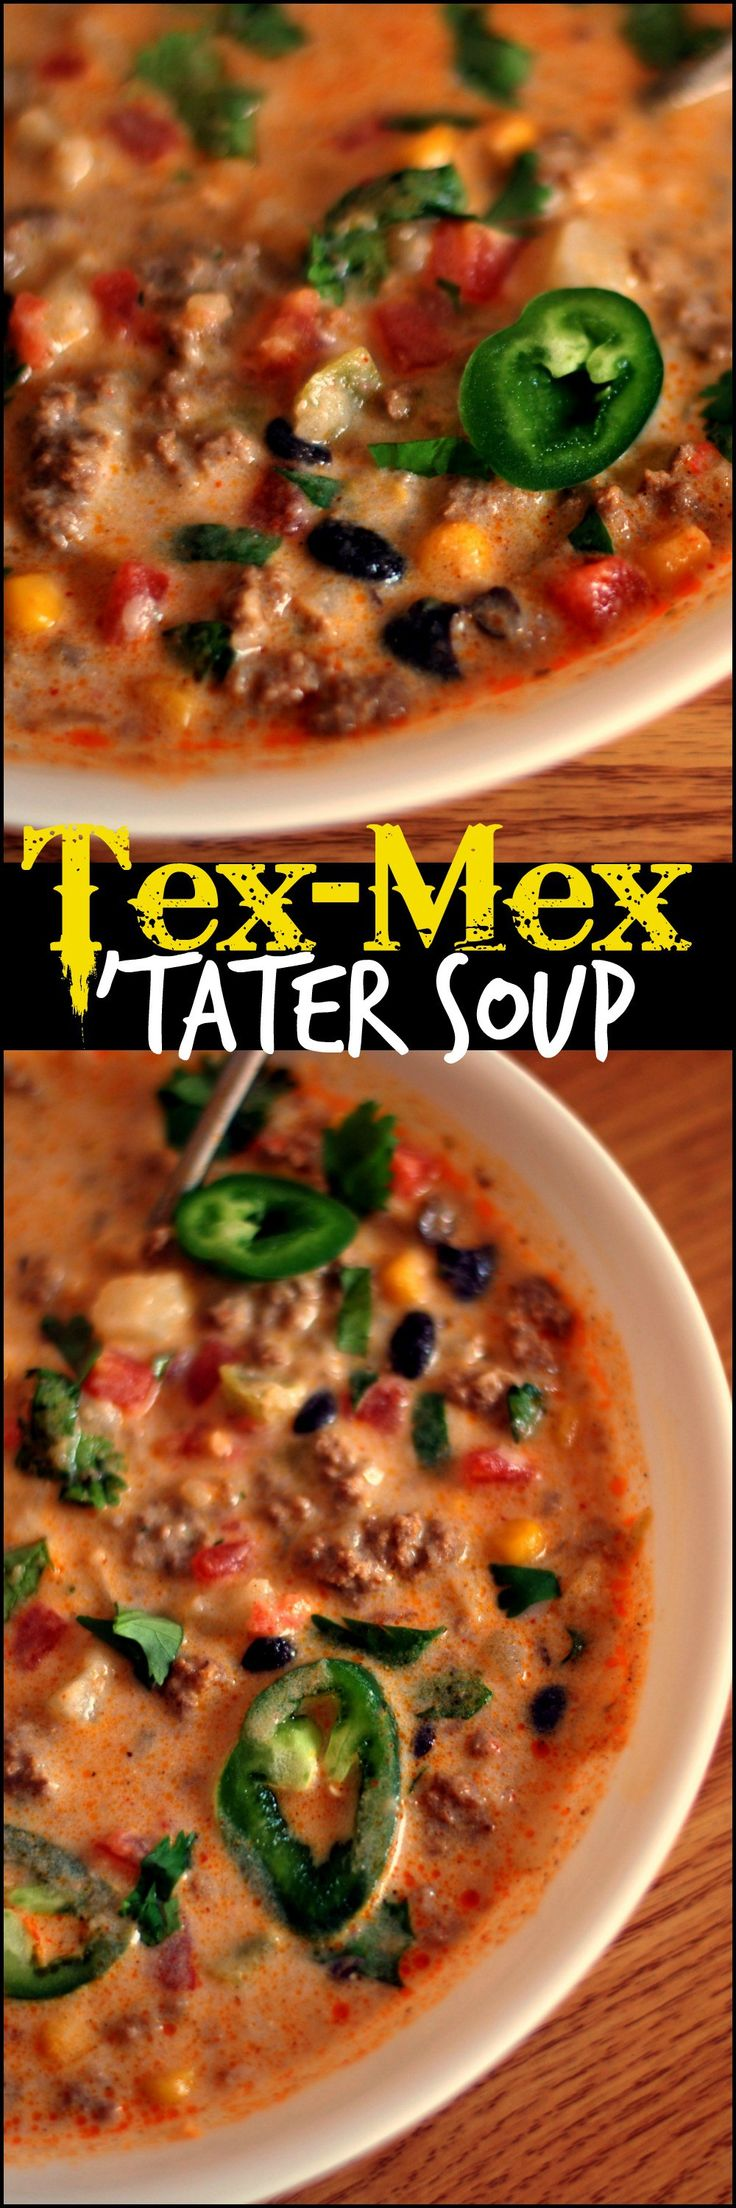 Tex-Mex Tater Soup - I omit the ground beef for ground turkey breast or veggie crumbles, still just as yummy!